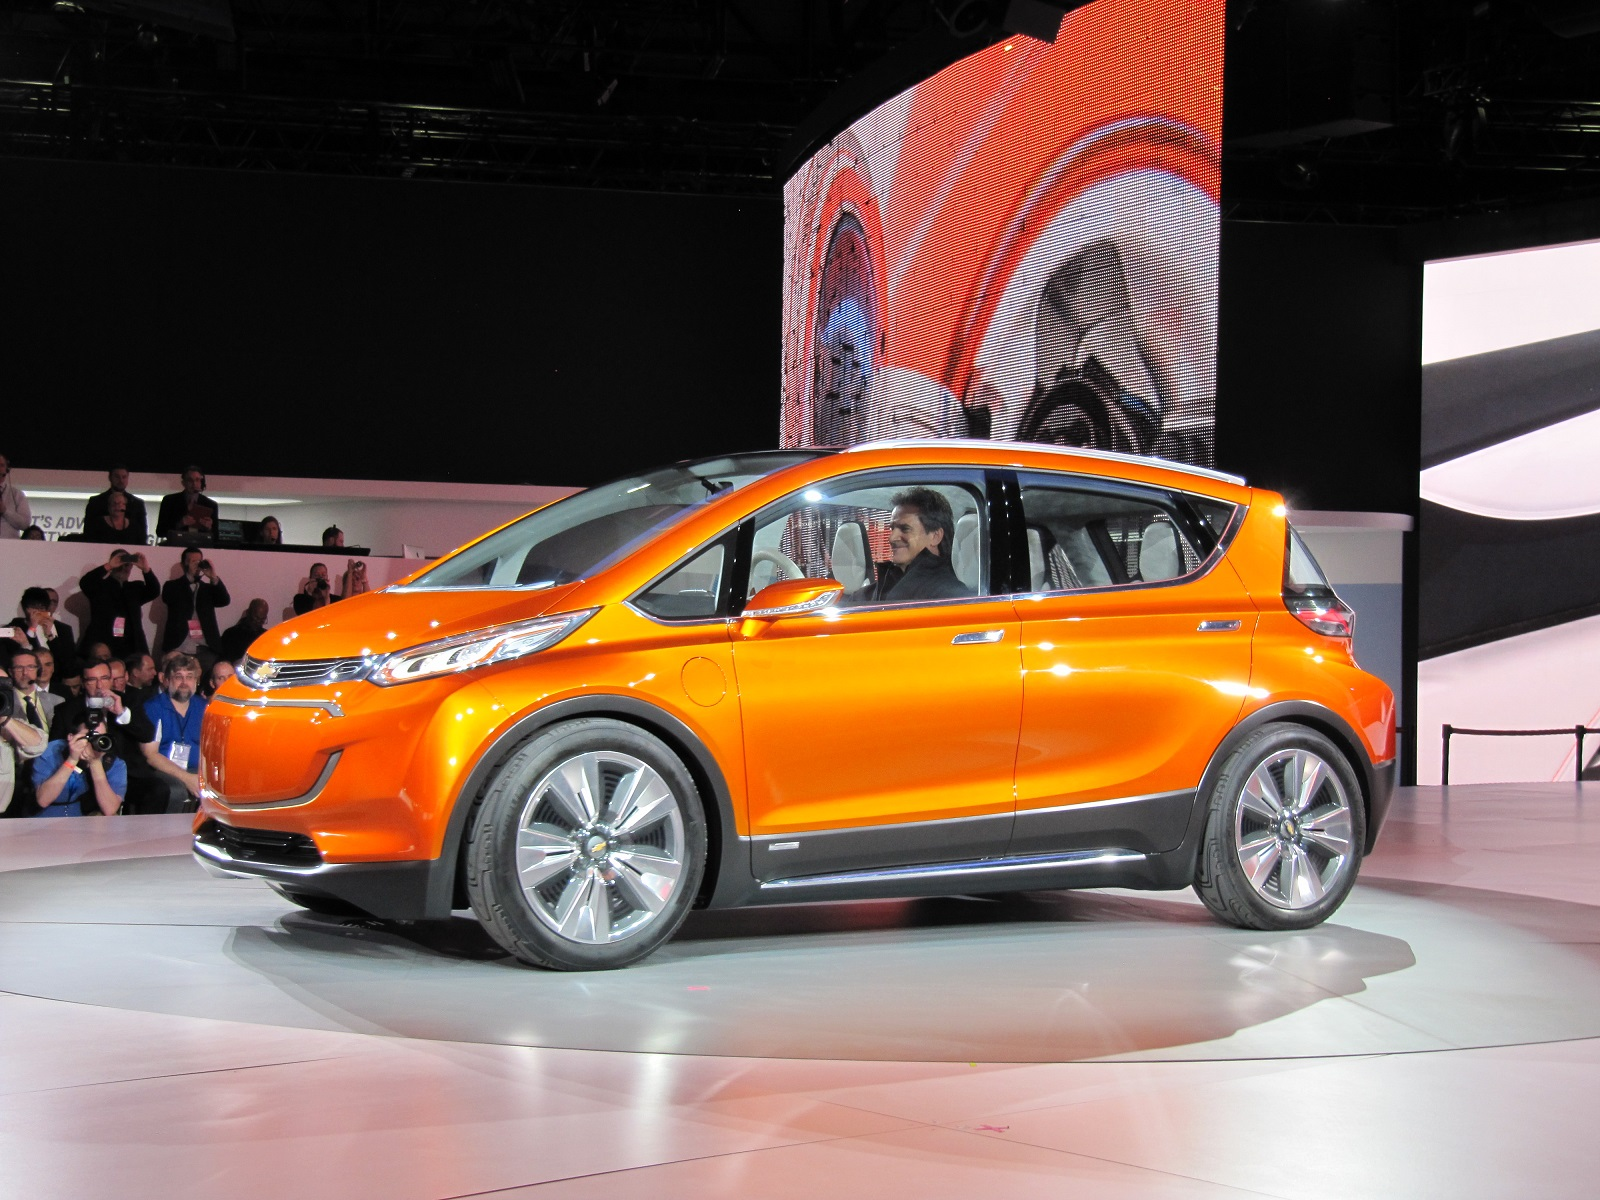 chevy bolt ev trademark to be shared with yamaha after u s patent office suspension update. Black Bedroom Furniture Sets. Home Design Ideas